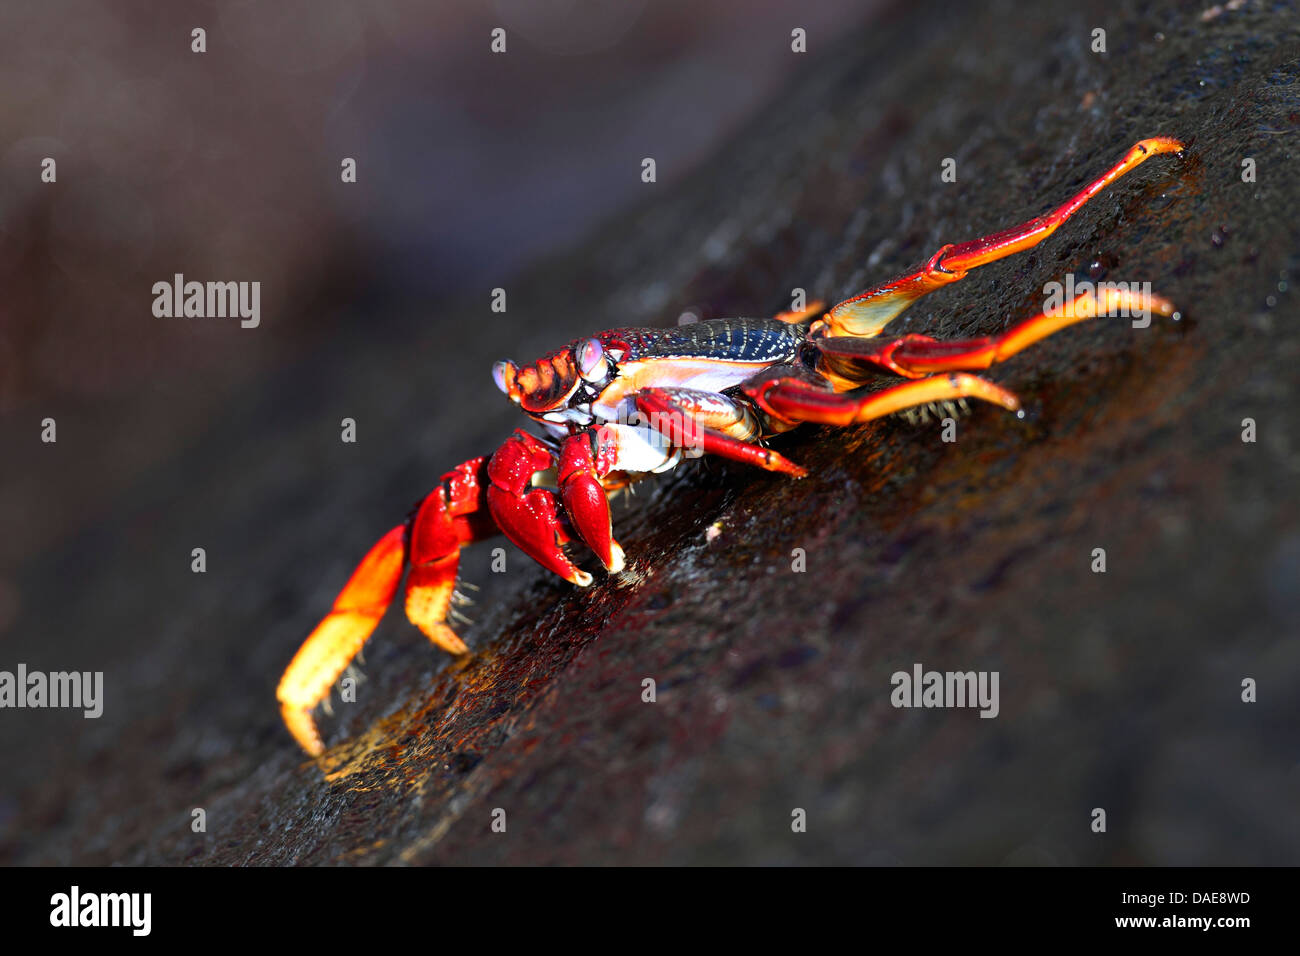 Sally lightfoot crab, Mottled shore crab (Grapsus grapsus), walking on a rock in the surf, Canary Islands, La Palma - Stock Image